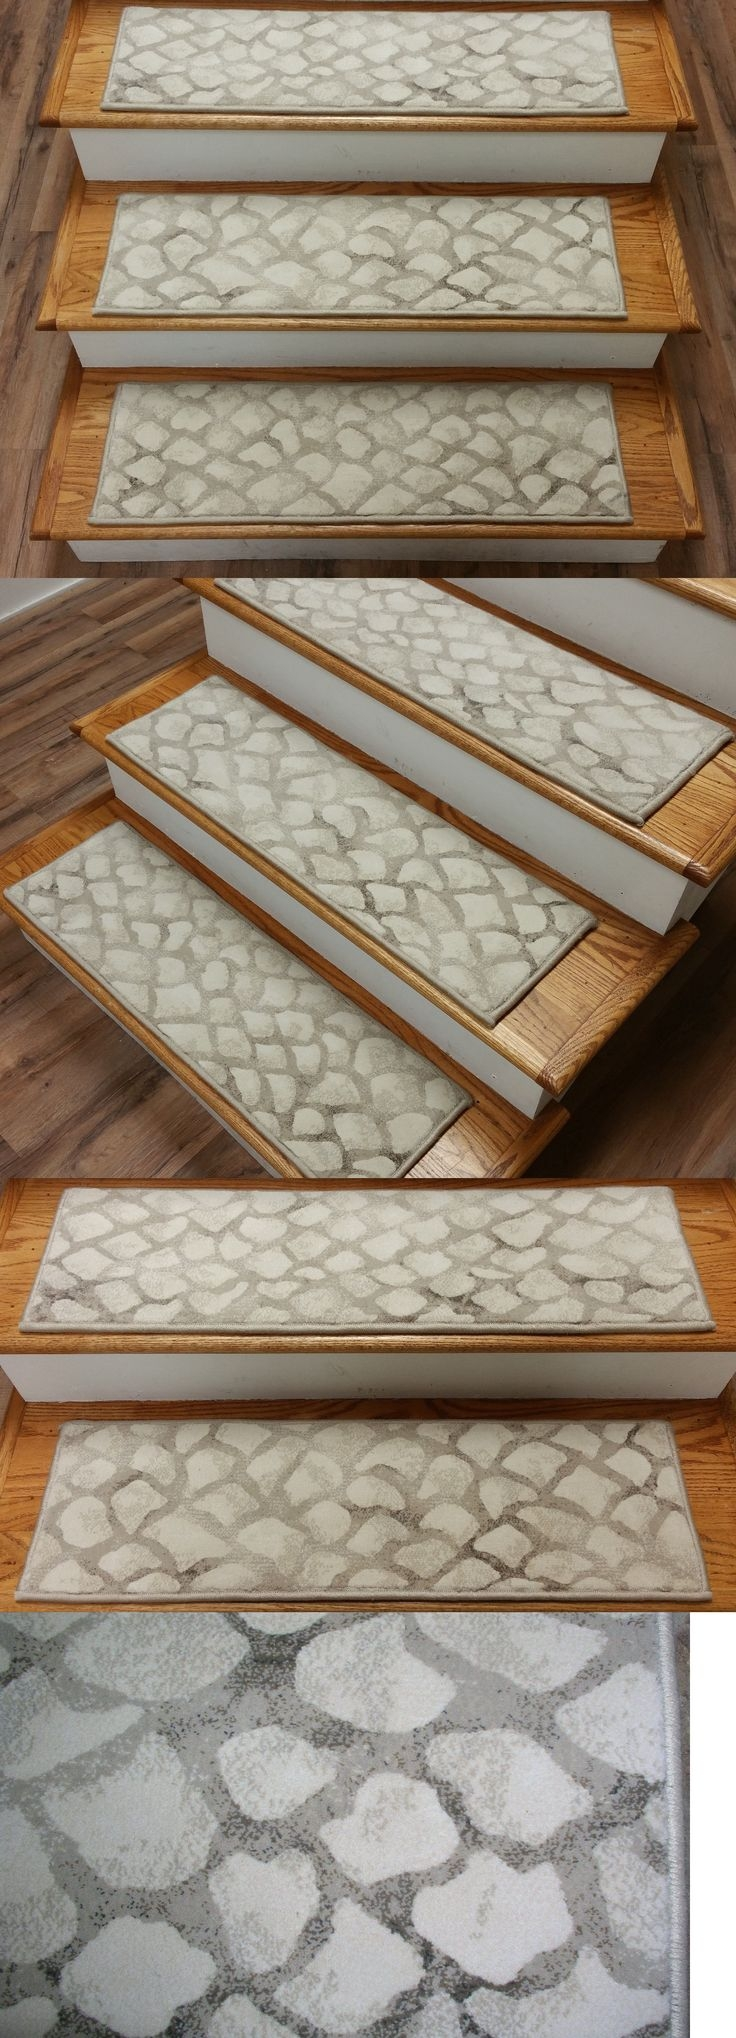 Best 20 Contemporary Stair Tread Rugs Ideas On Pinterest Rugs Inside Contemporary Stair Treads (#3 of 20)